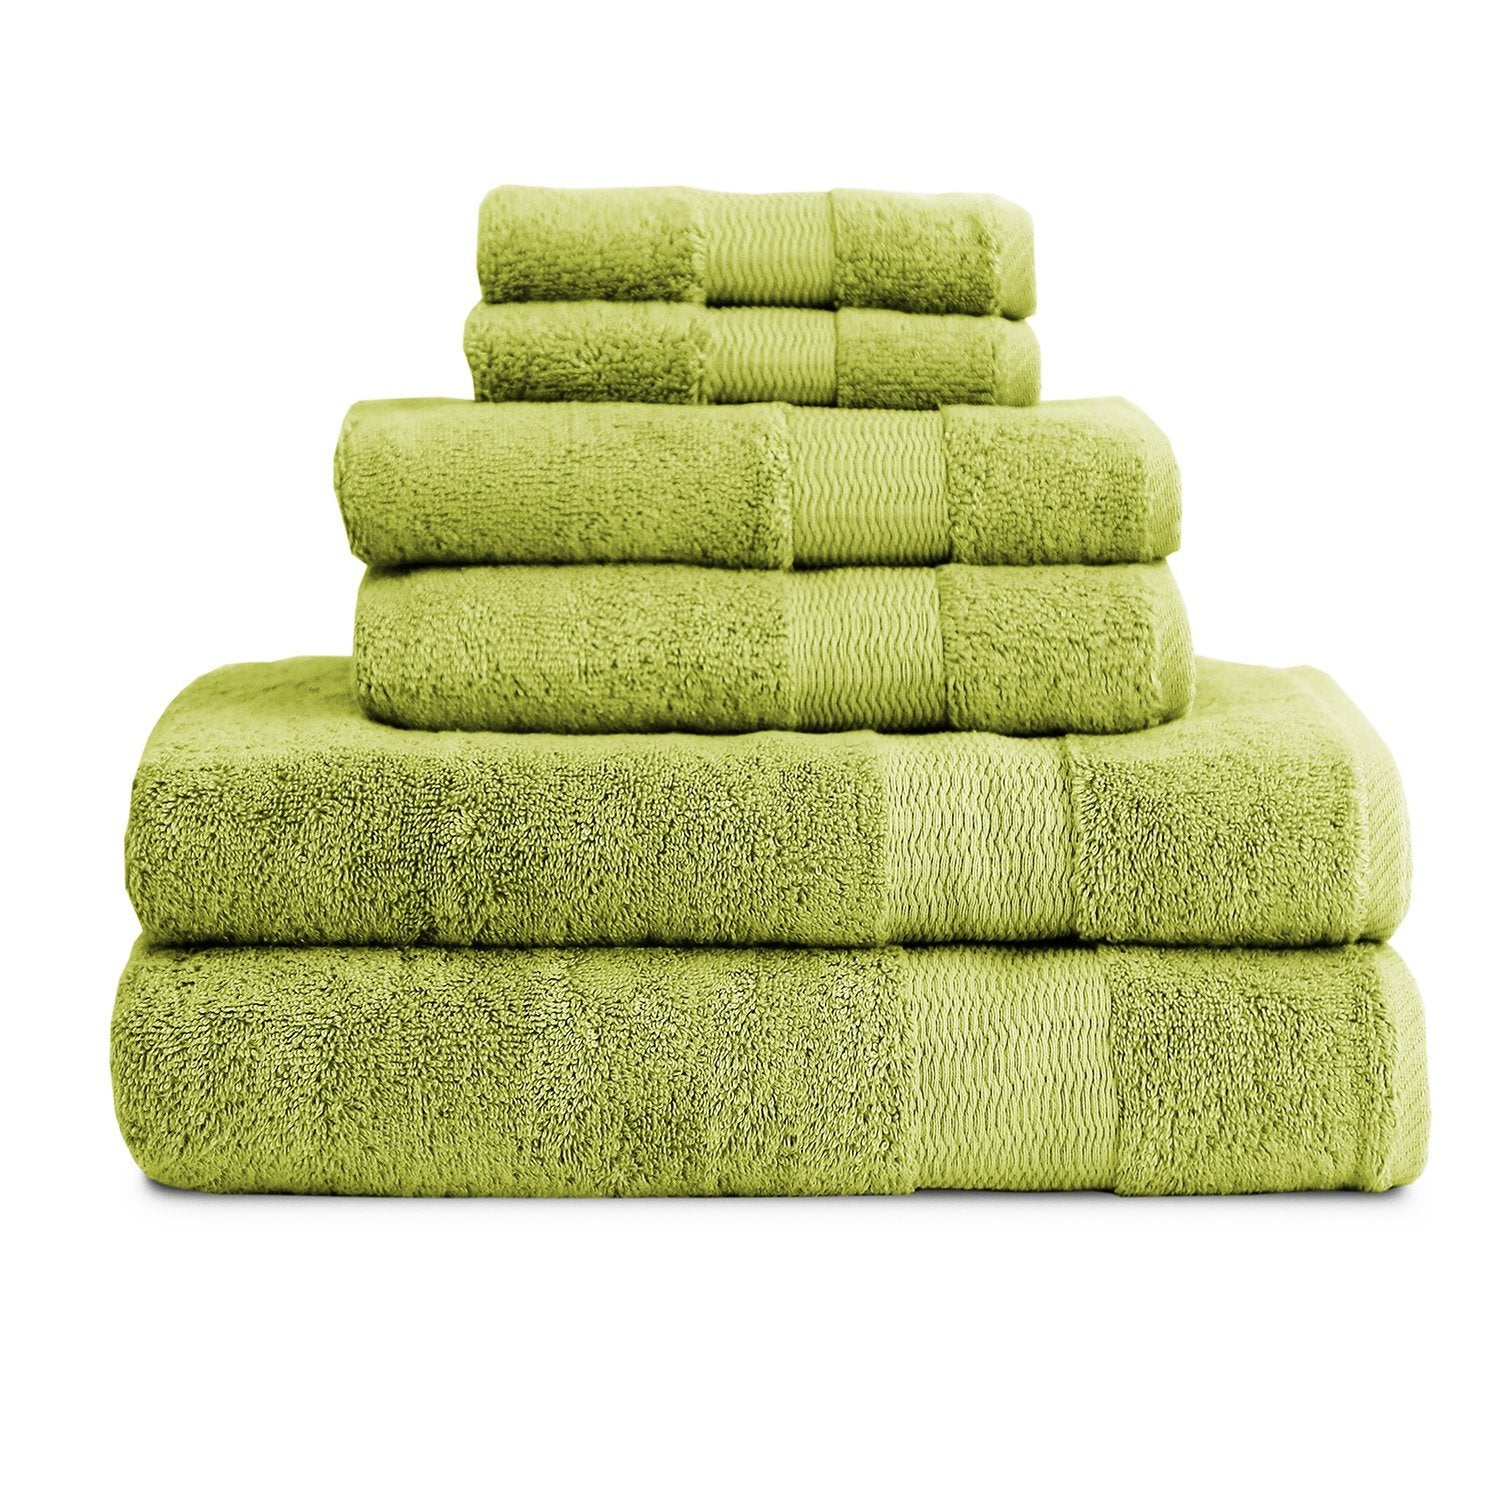 St. Tropez 100% Supima Cotton Spa Towels